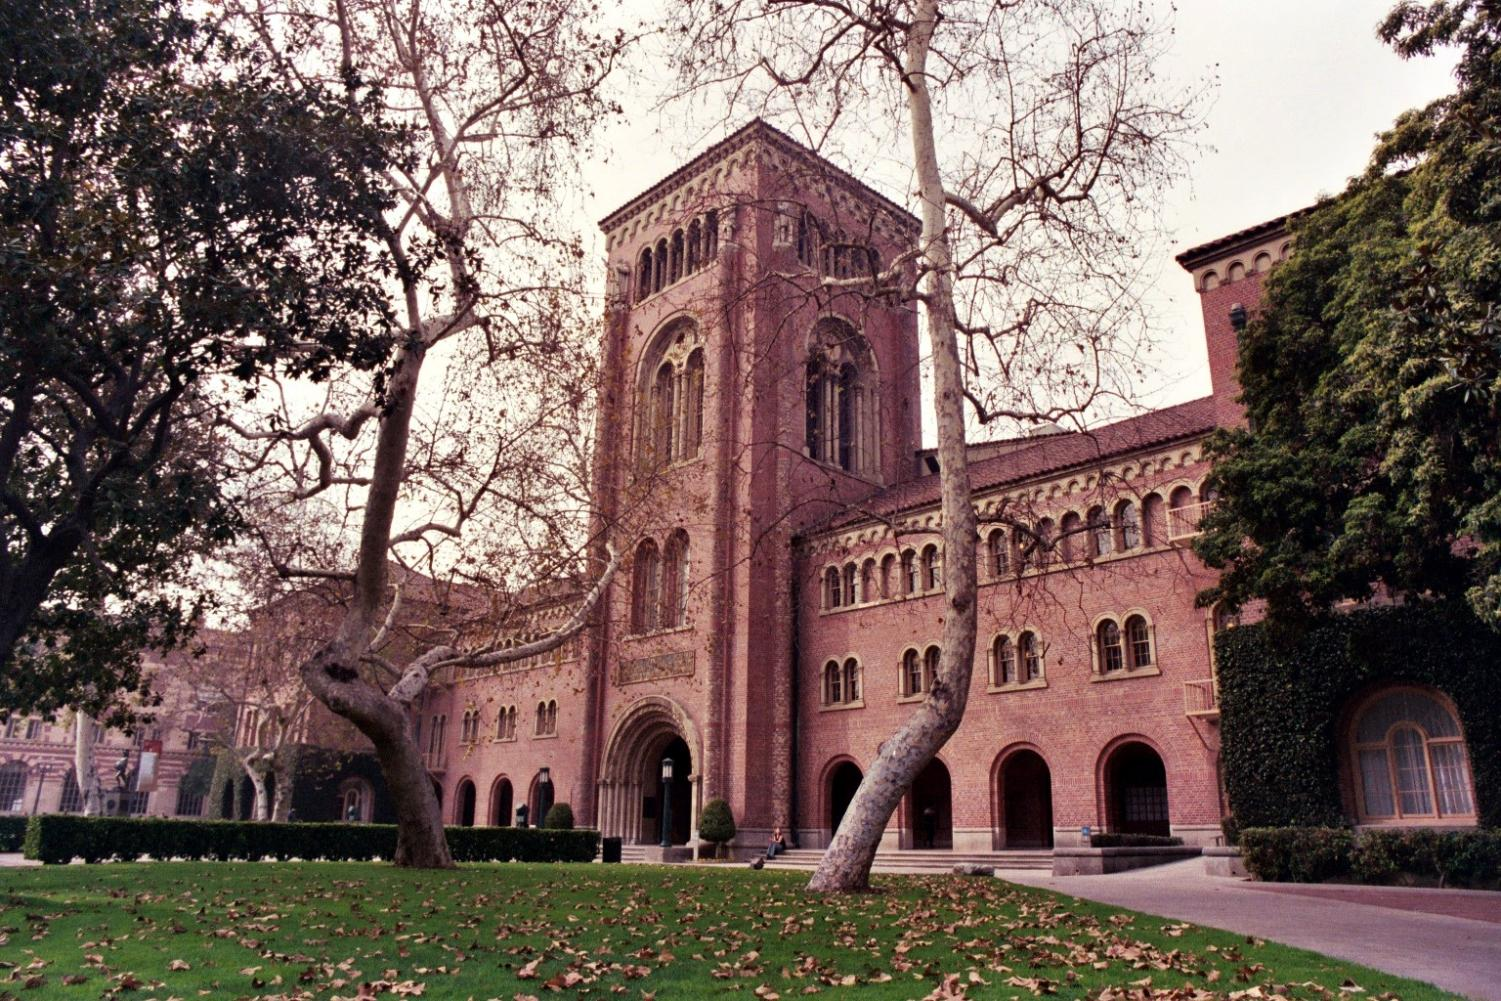 The University of Southern California is at the forefront of the scandal, joined by Stanford and the University of California, Los Angeles, among other schools across the country. (Photo courtesy of Wikimedia Commons)